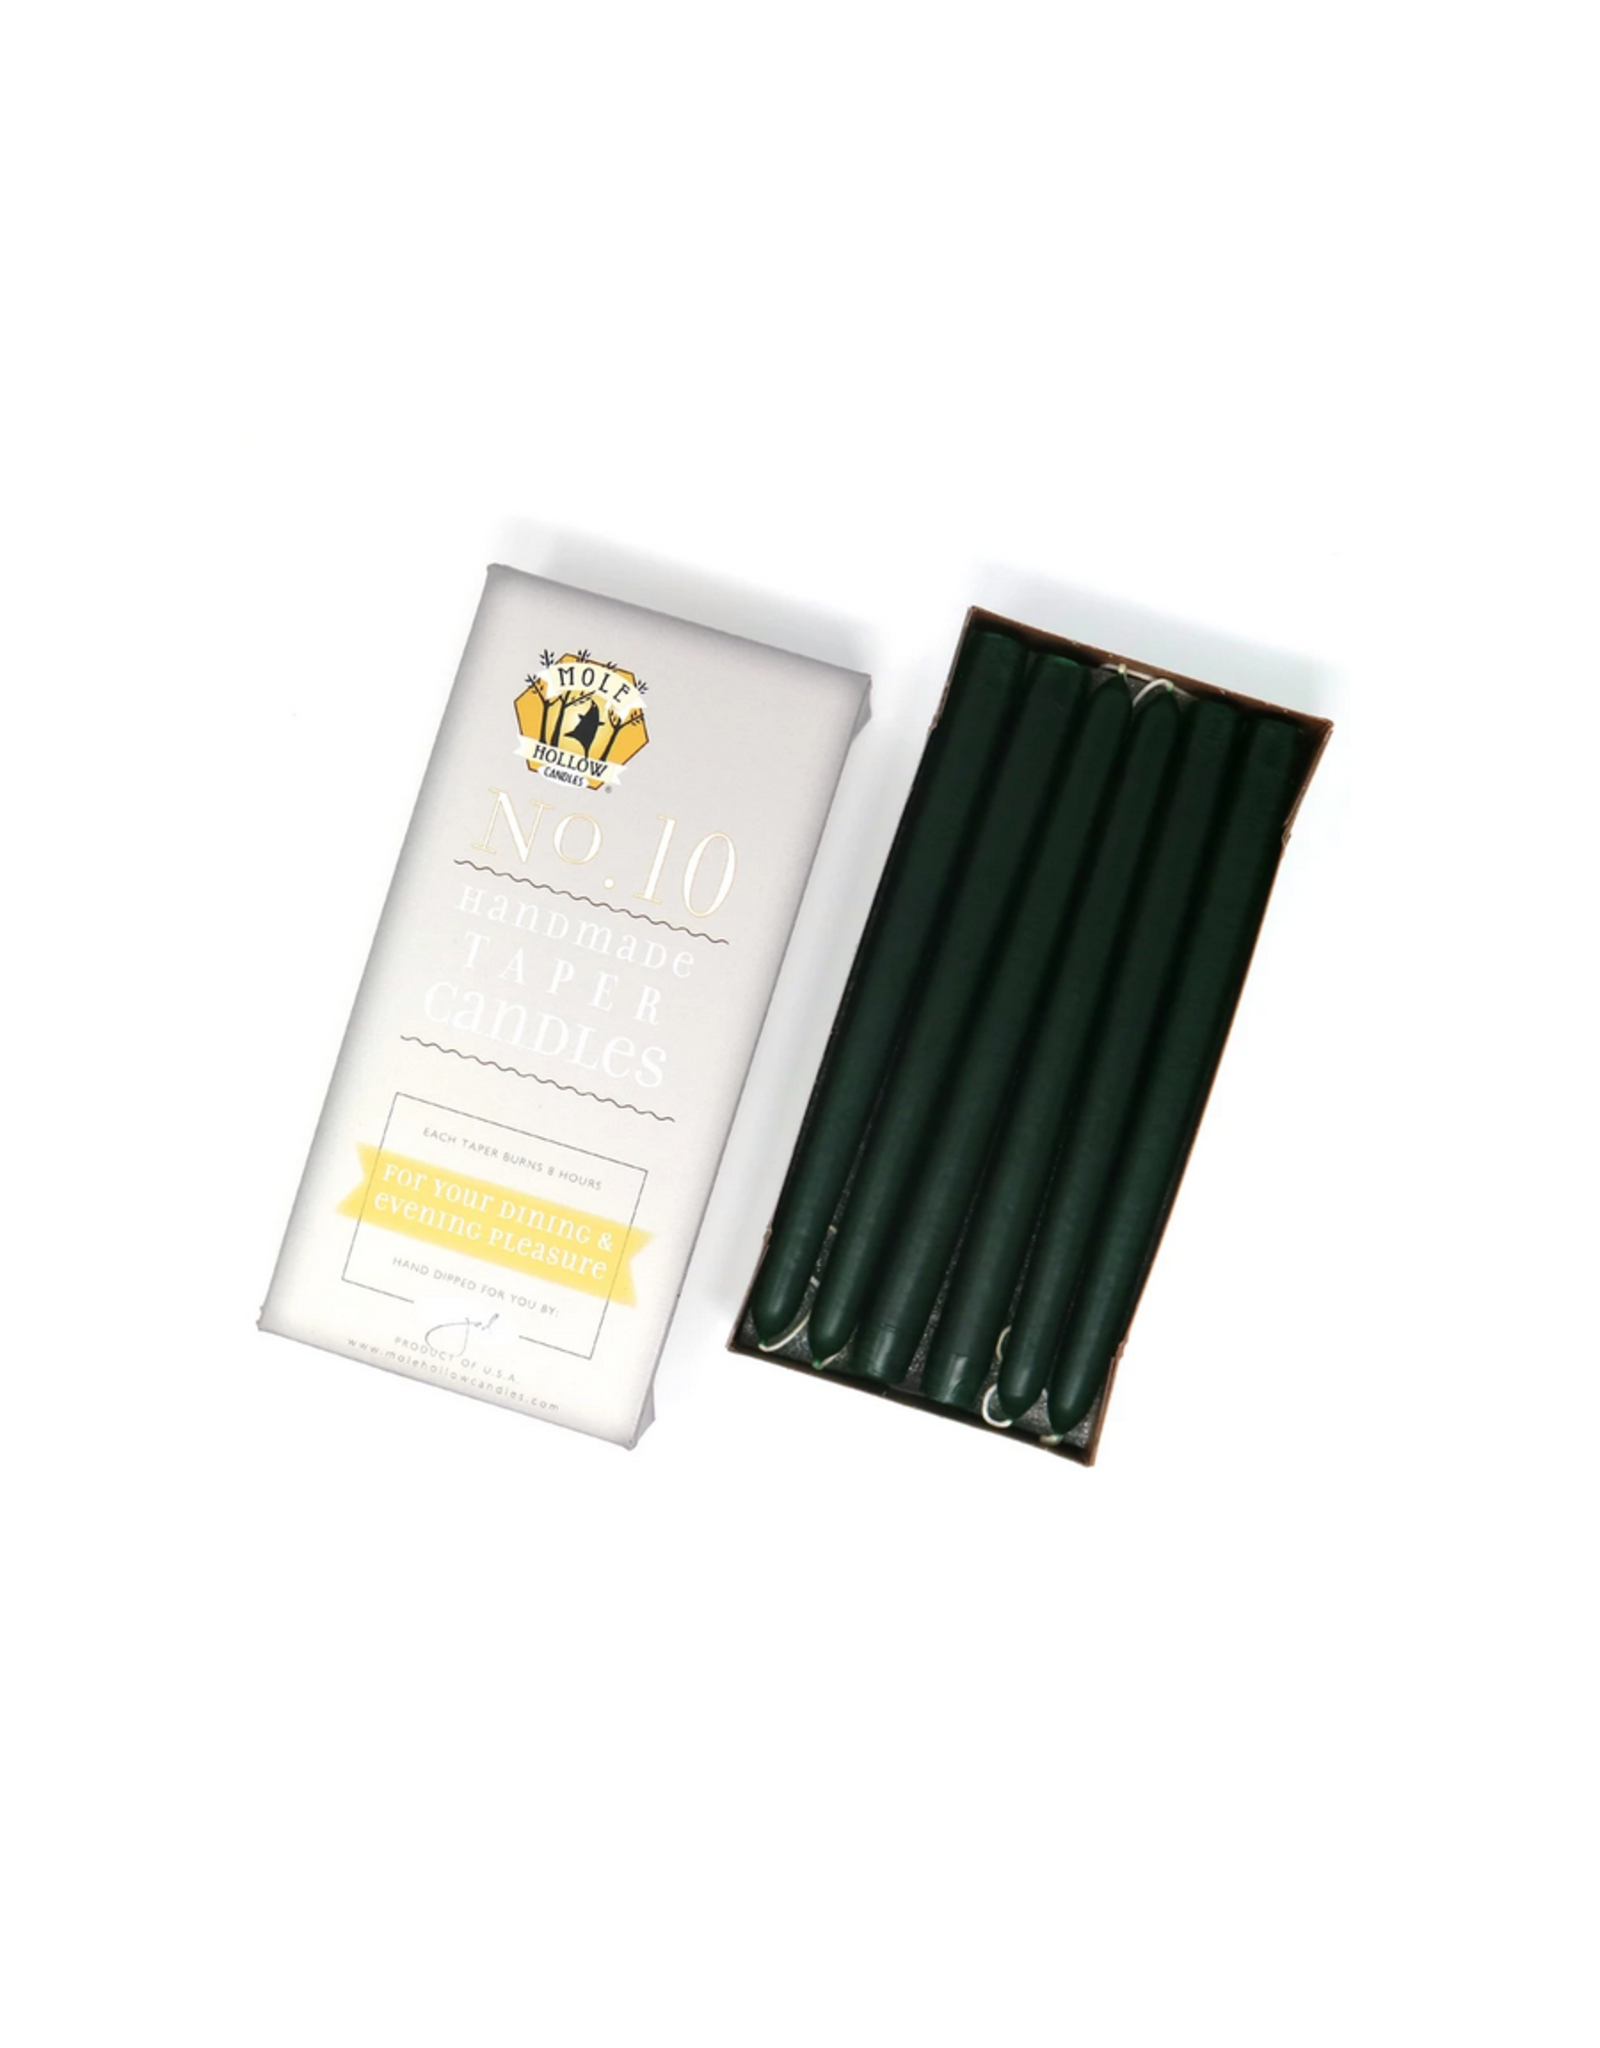 Hunter Green Taper Candle